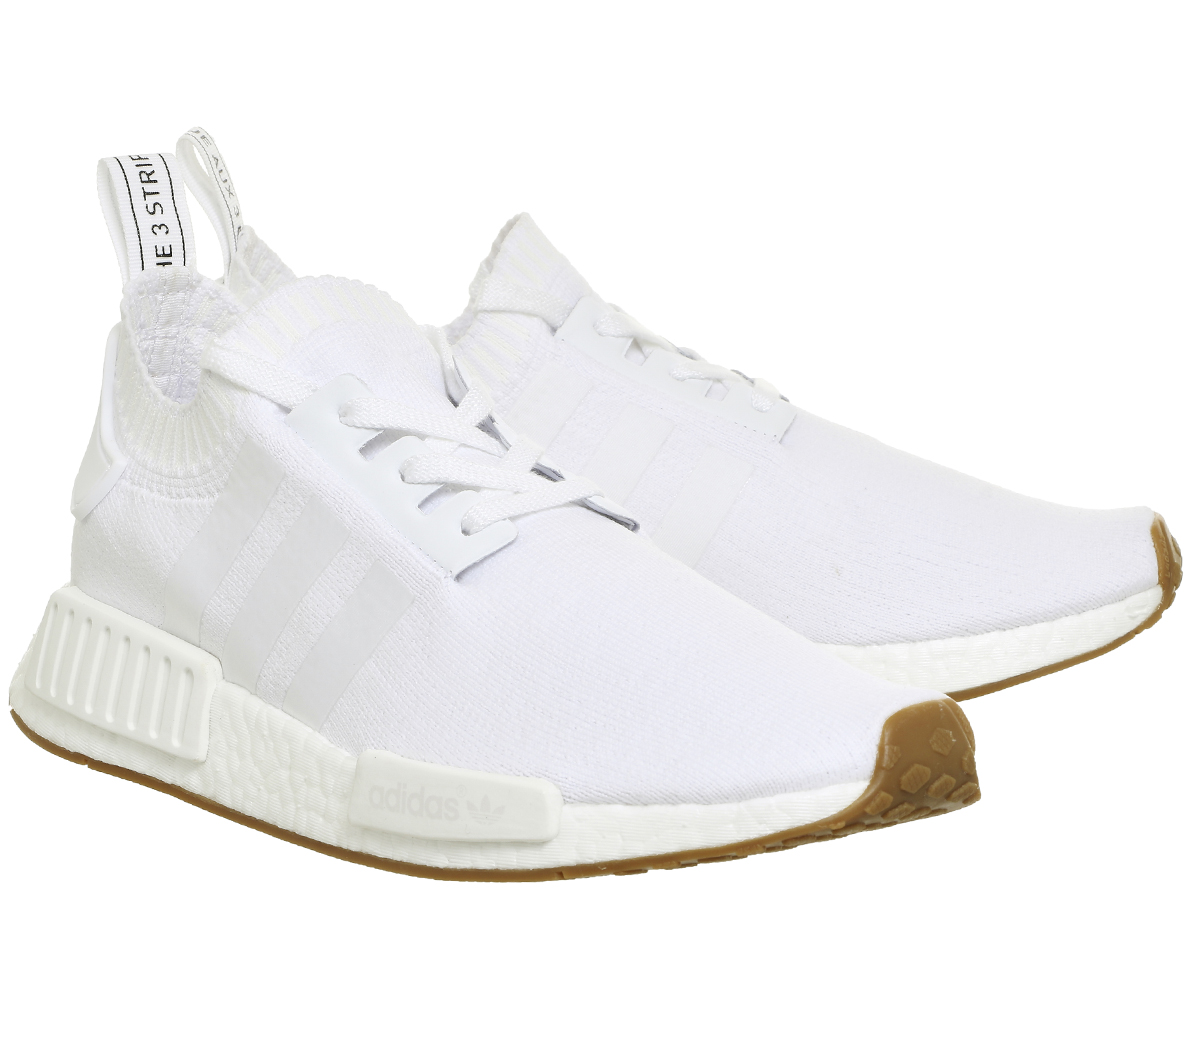 Adidas Nmd R1 Prime Knit WHITE WHITE GUM Trainers Shoes  38cf3c1d7